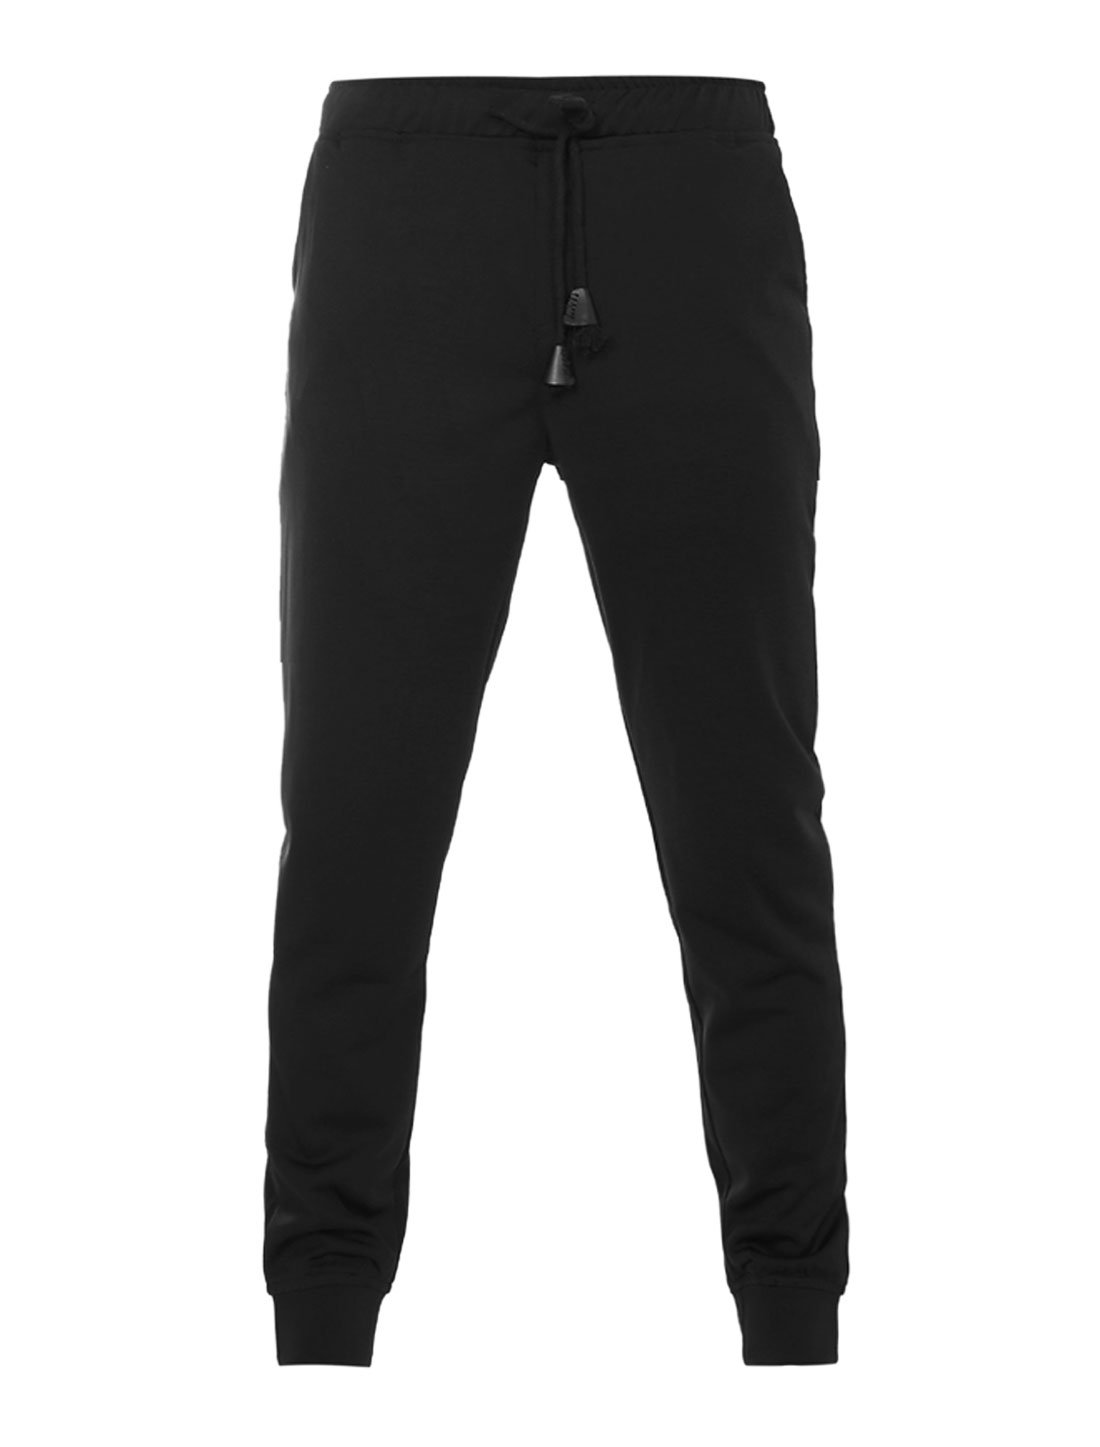 Men Side Pockets Elastic Drawstring Waist Jogger Pants Black W32